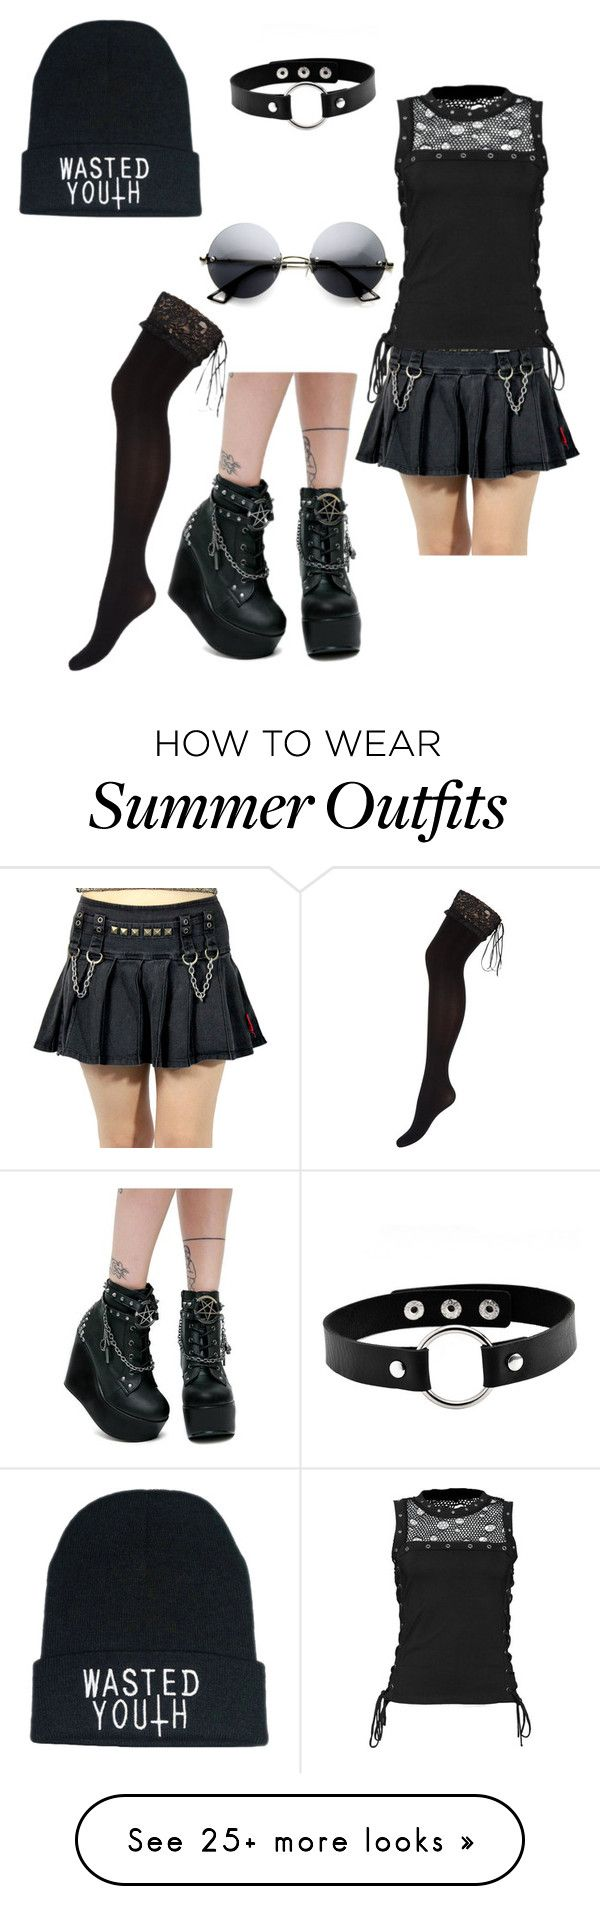 """""""Luna outfit 3"""" by jubileex-girl on Polyvore featuring Ann Summers..."""